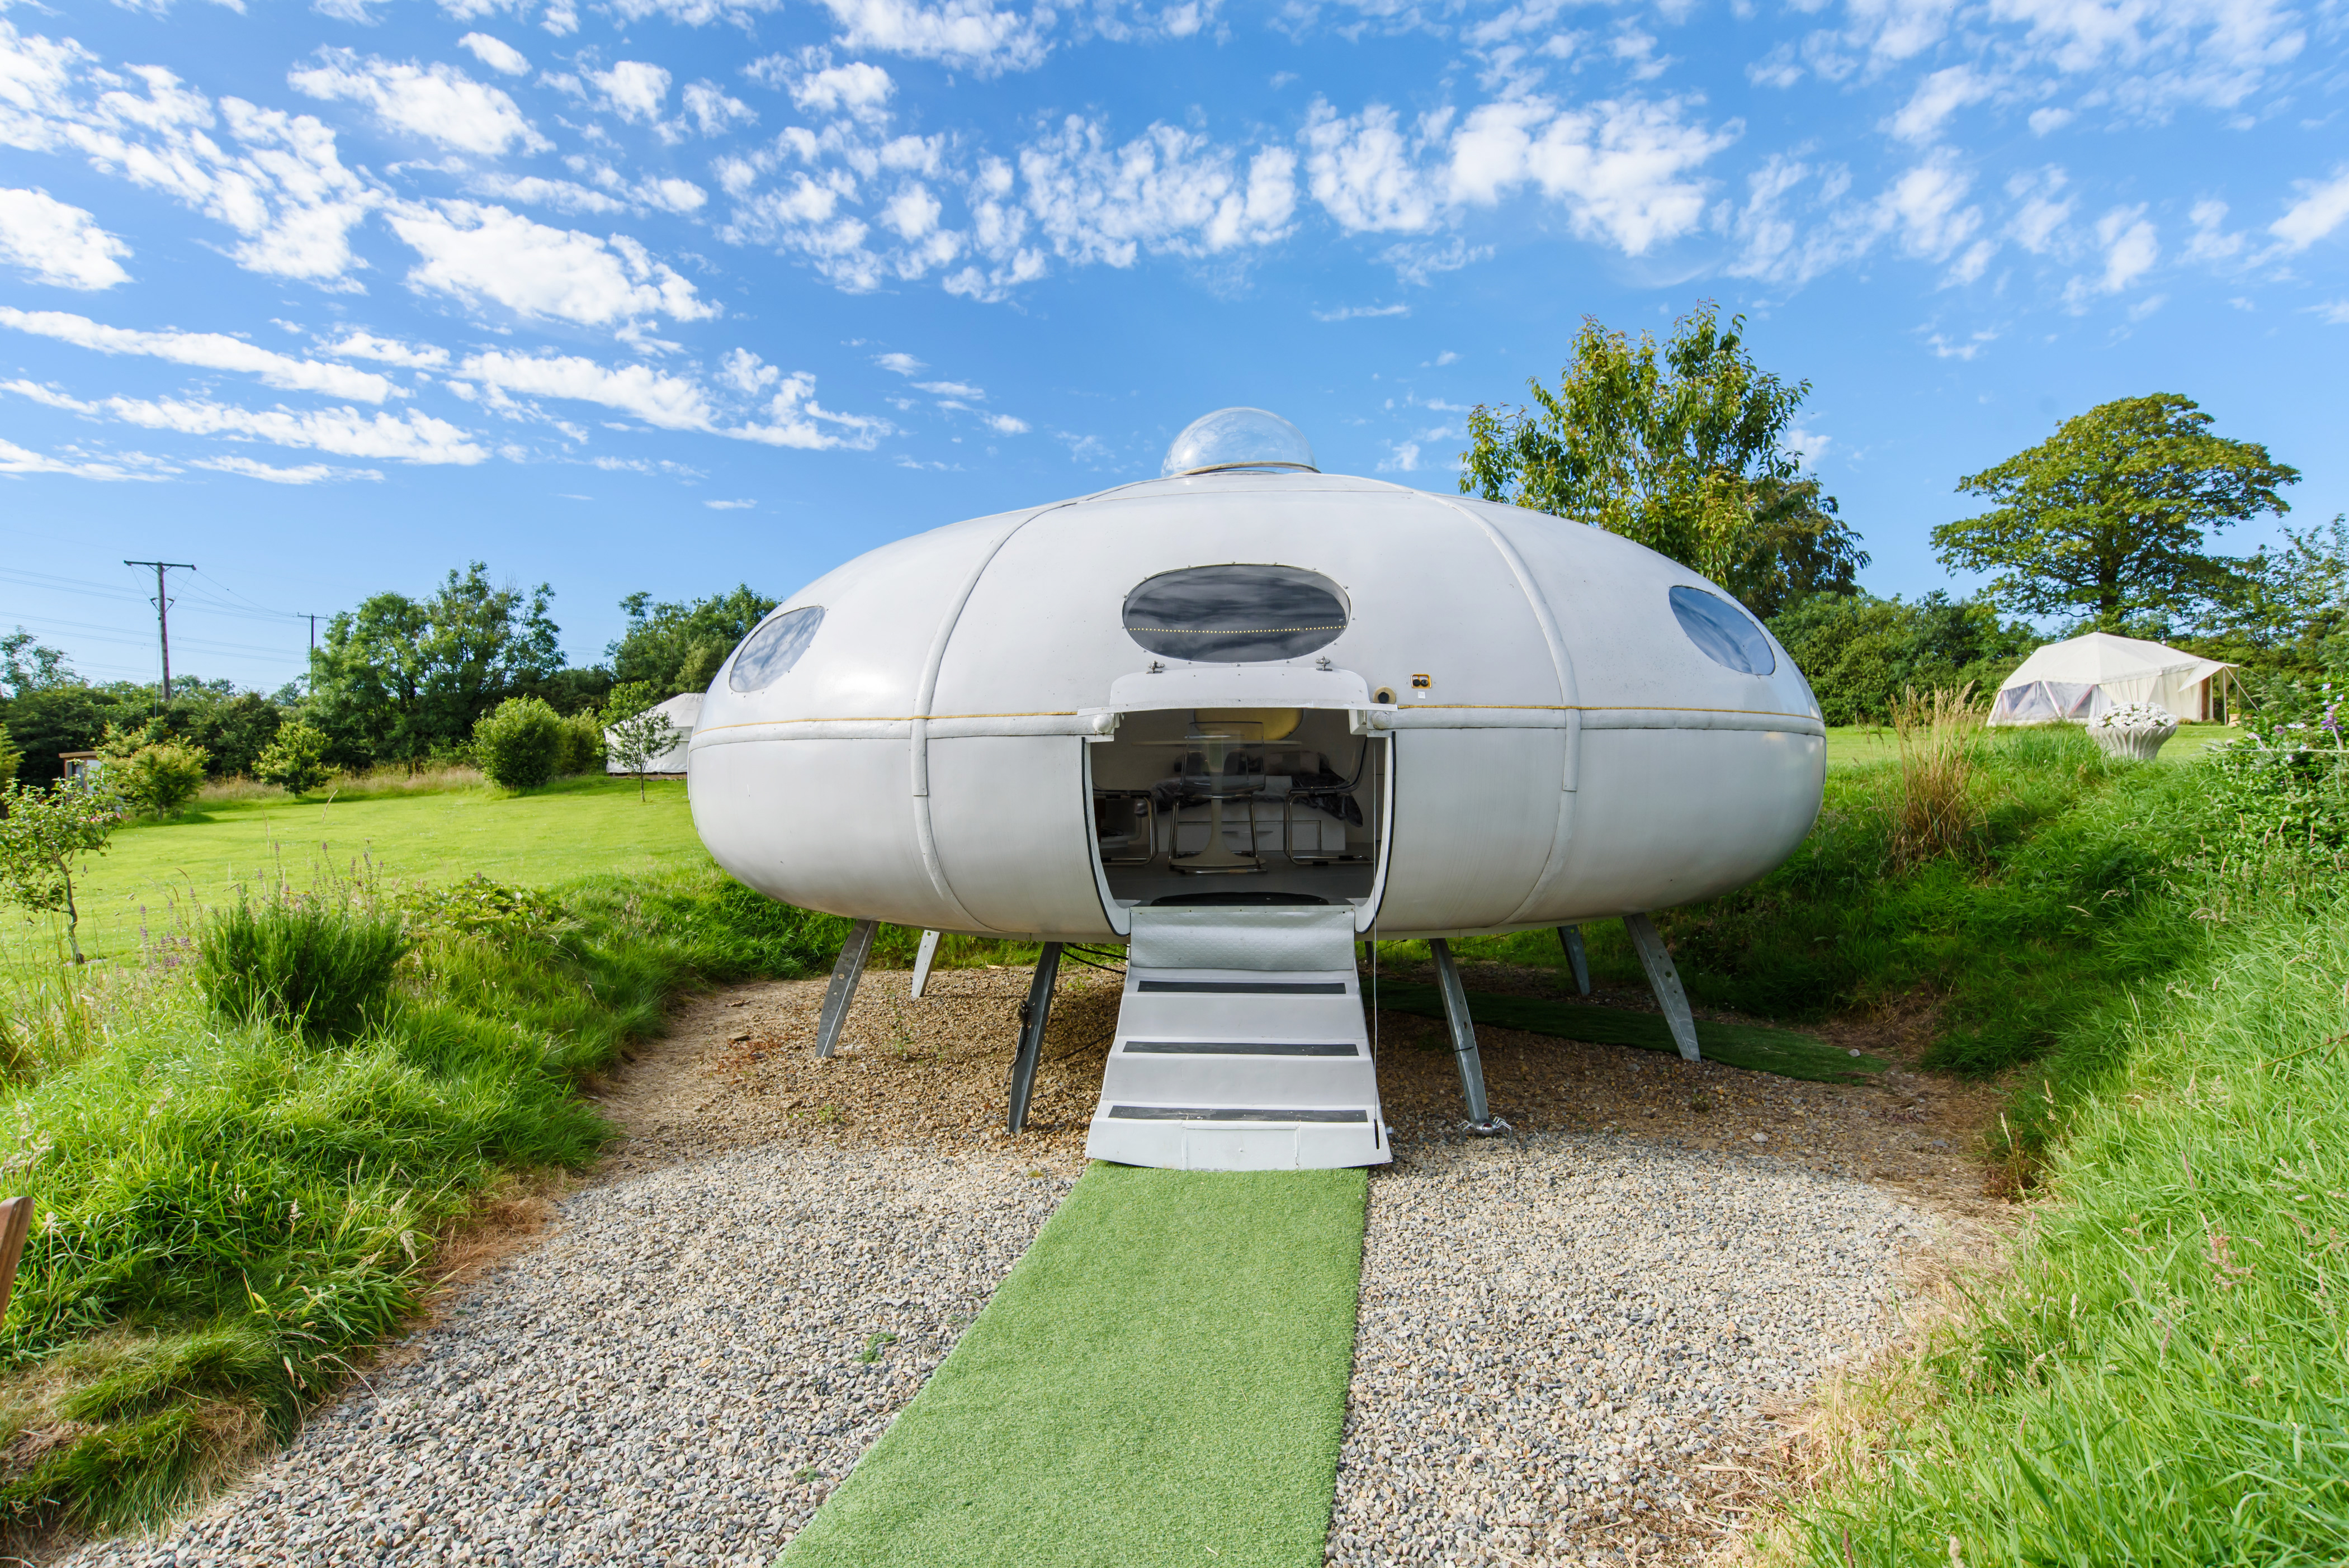 In honor of Apollo 11, these space-themed vacation rentals are going for $11 a night